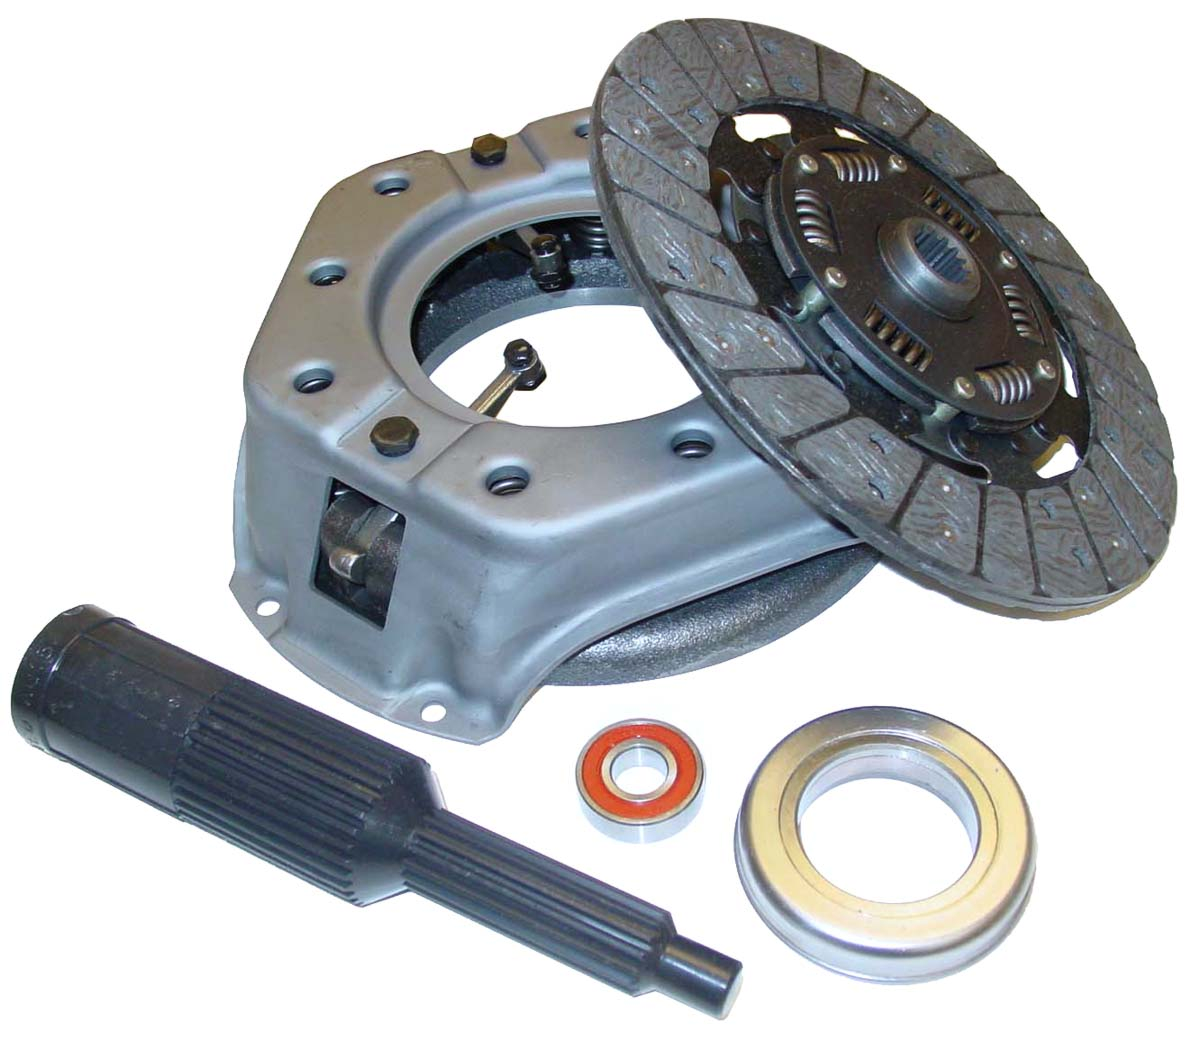 8n ford clutch semi trailers for sale in germany fds415 new kit n tractor parts